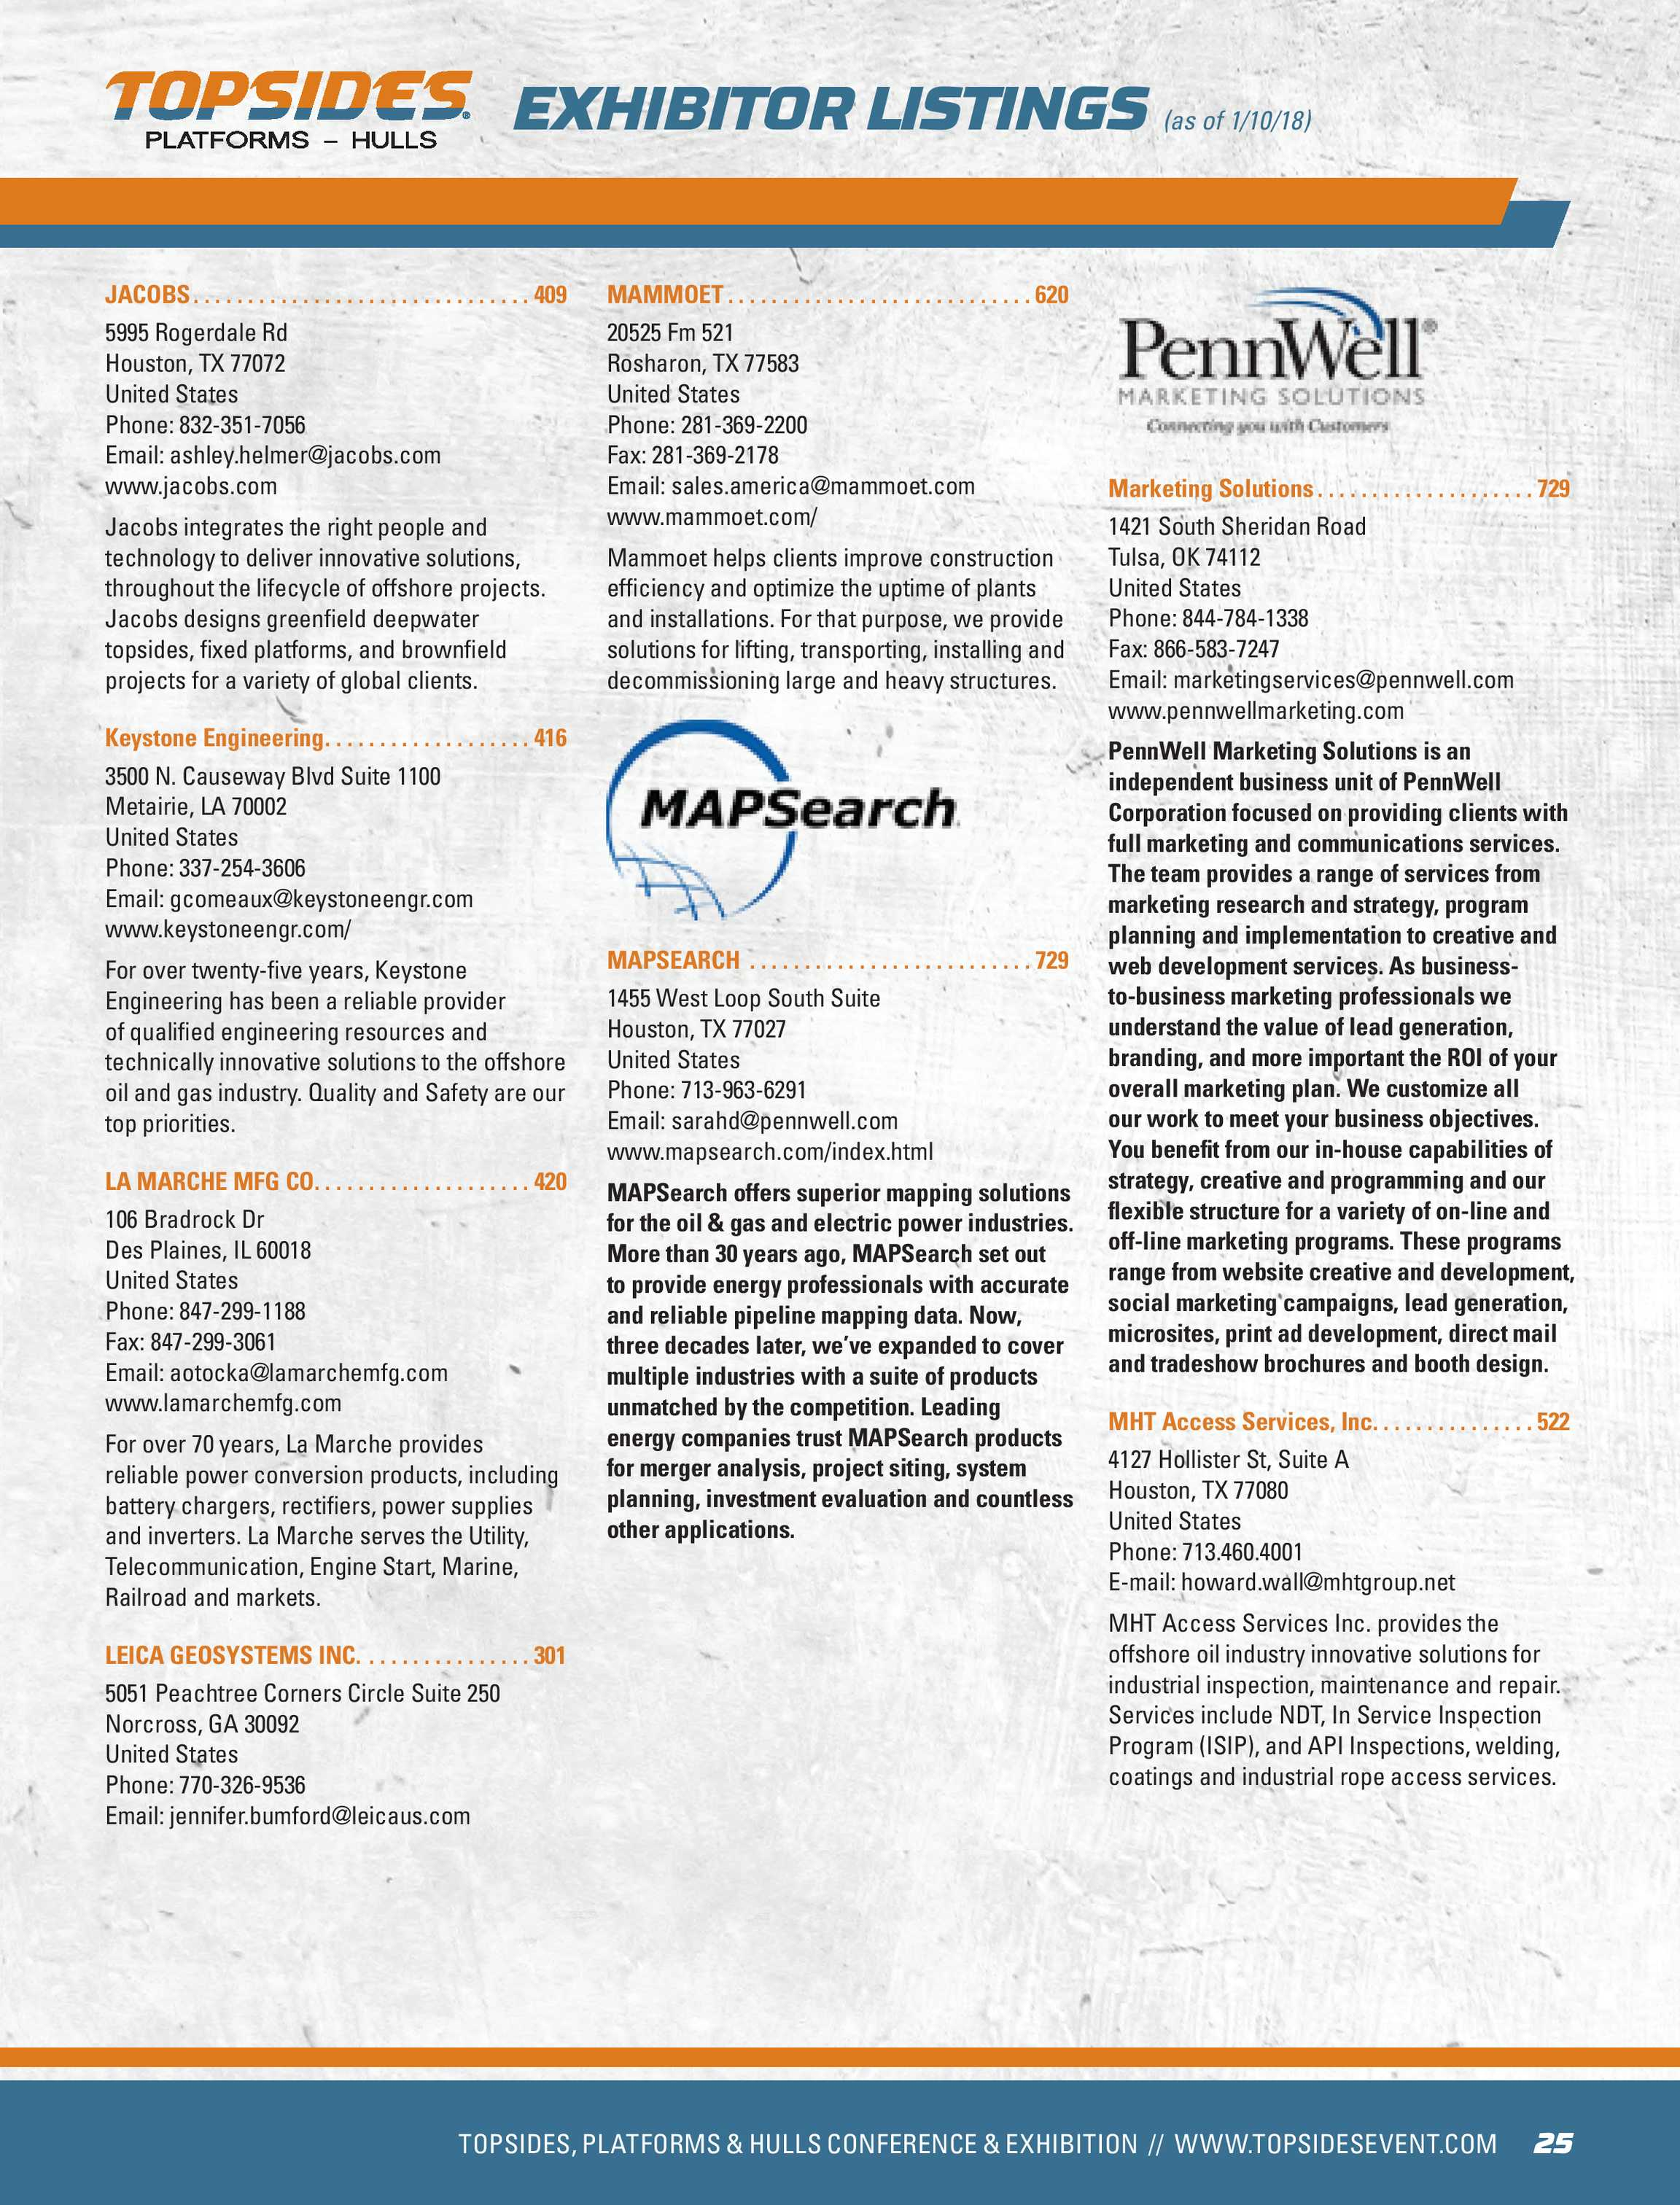 Pennwell Supplements - Topsides 2018 Show Guide - page 25